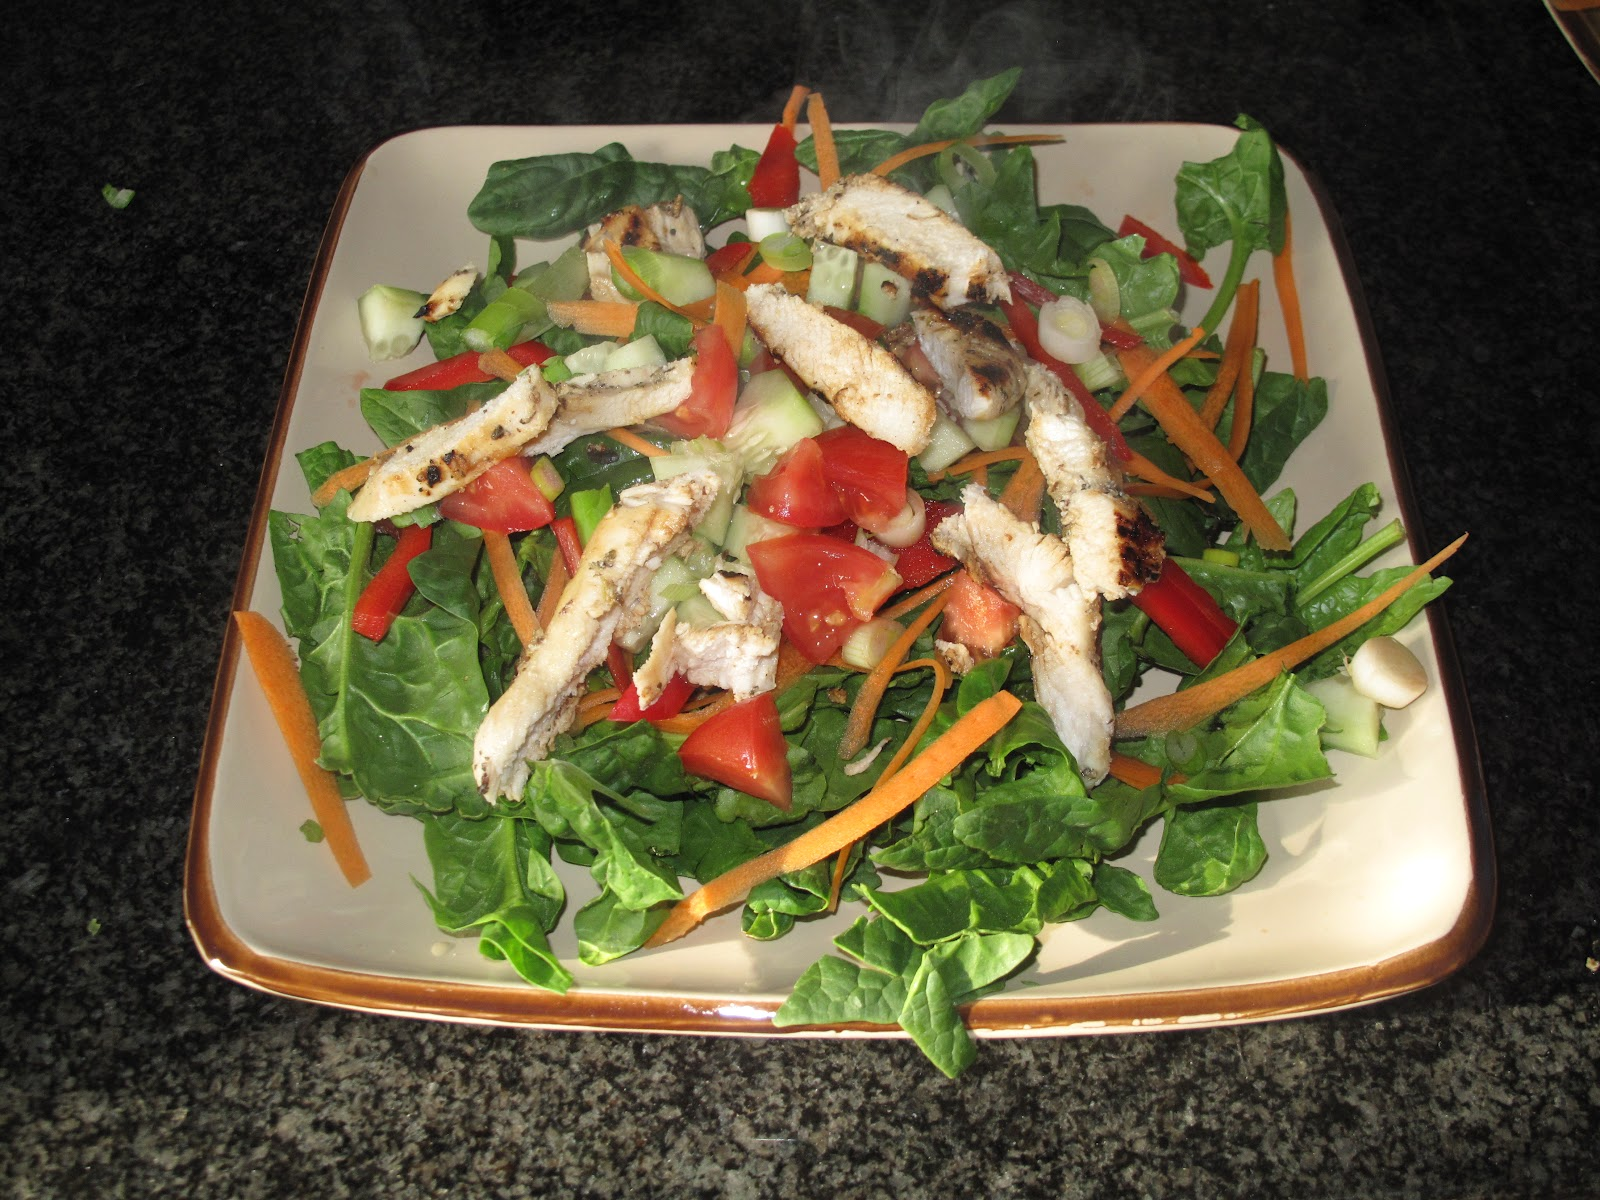 ... : Grilled Chicken & Spinach Salad with Balsamic Vinaigrette Dressing